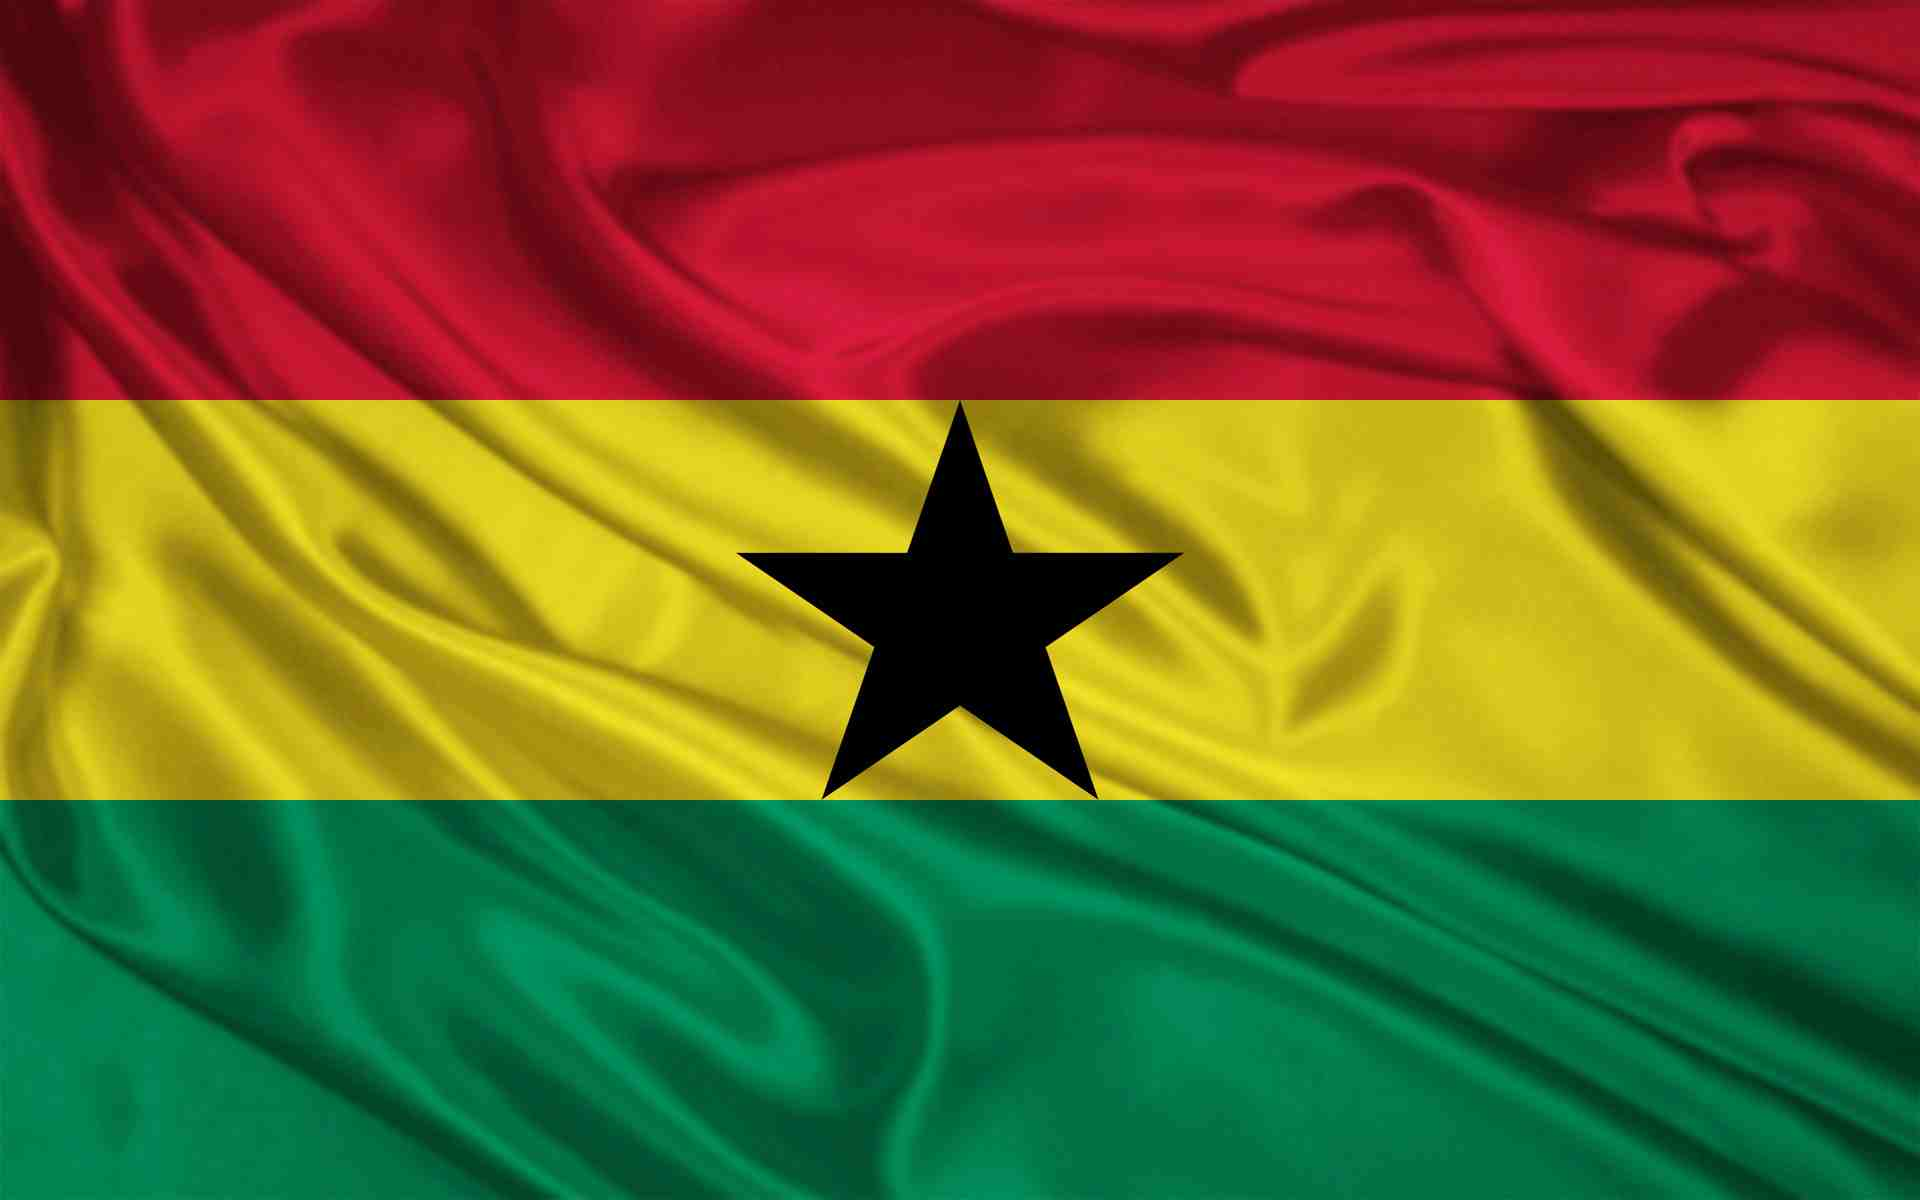 Ghana National Flag with a Star 109.49 Kb